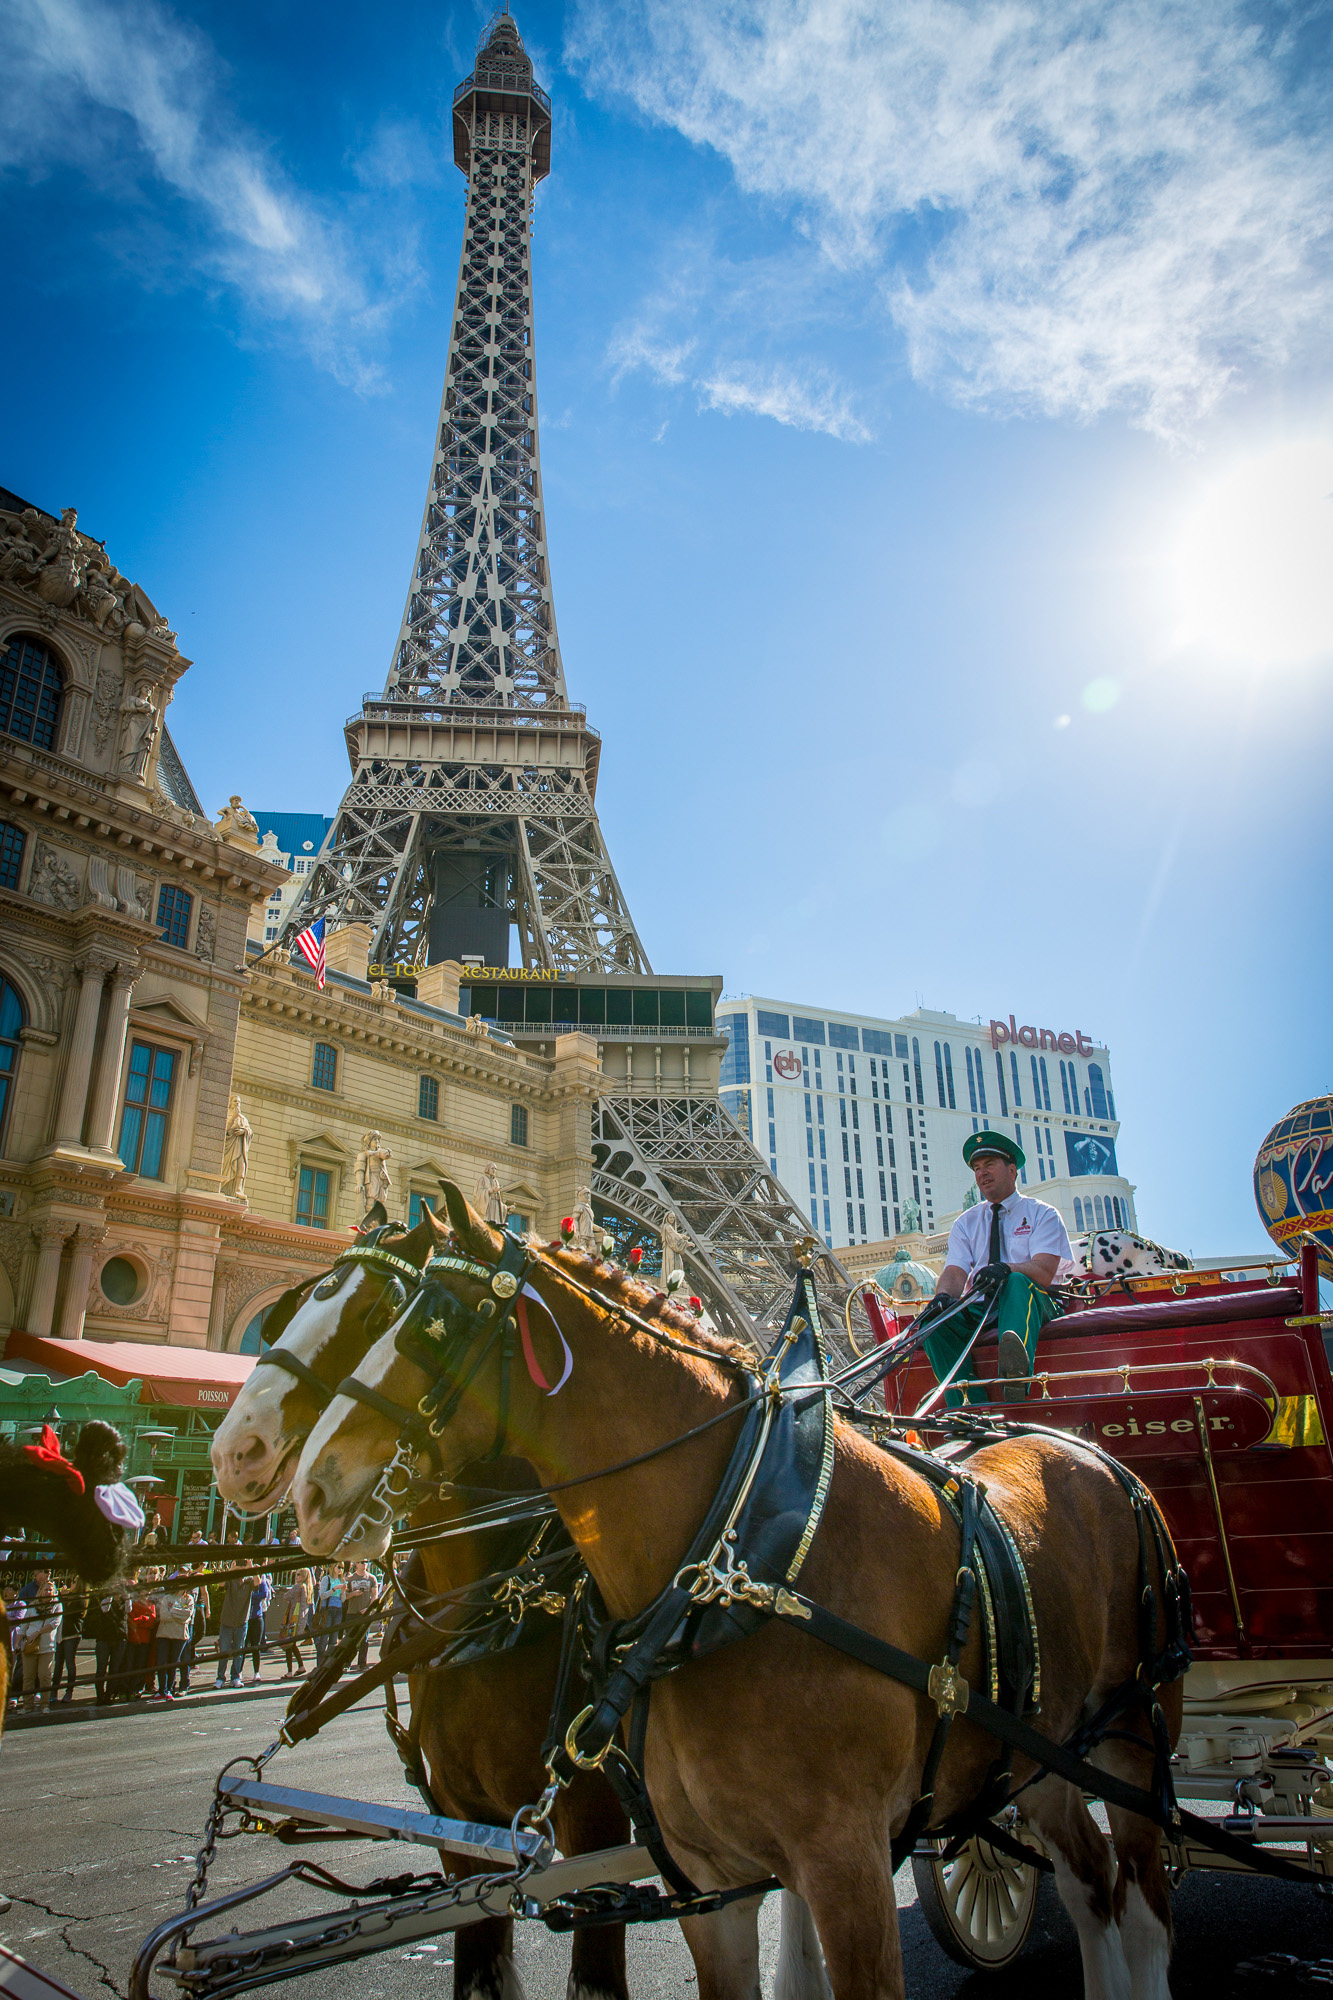 The Budweiser Clydesdales pass by the iconic Paris Las Vegas Eiffel Tower as they trot down the Las Vegas Strip.